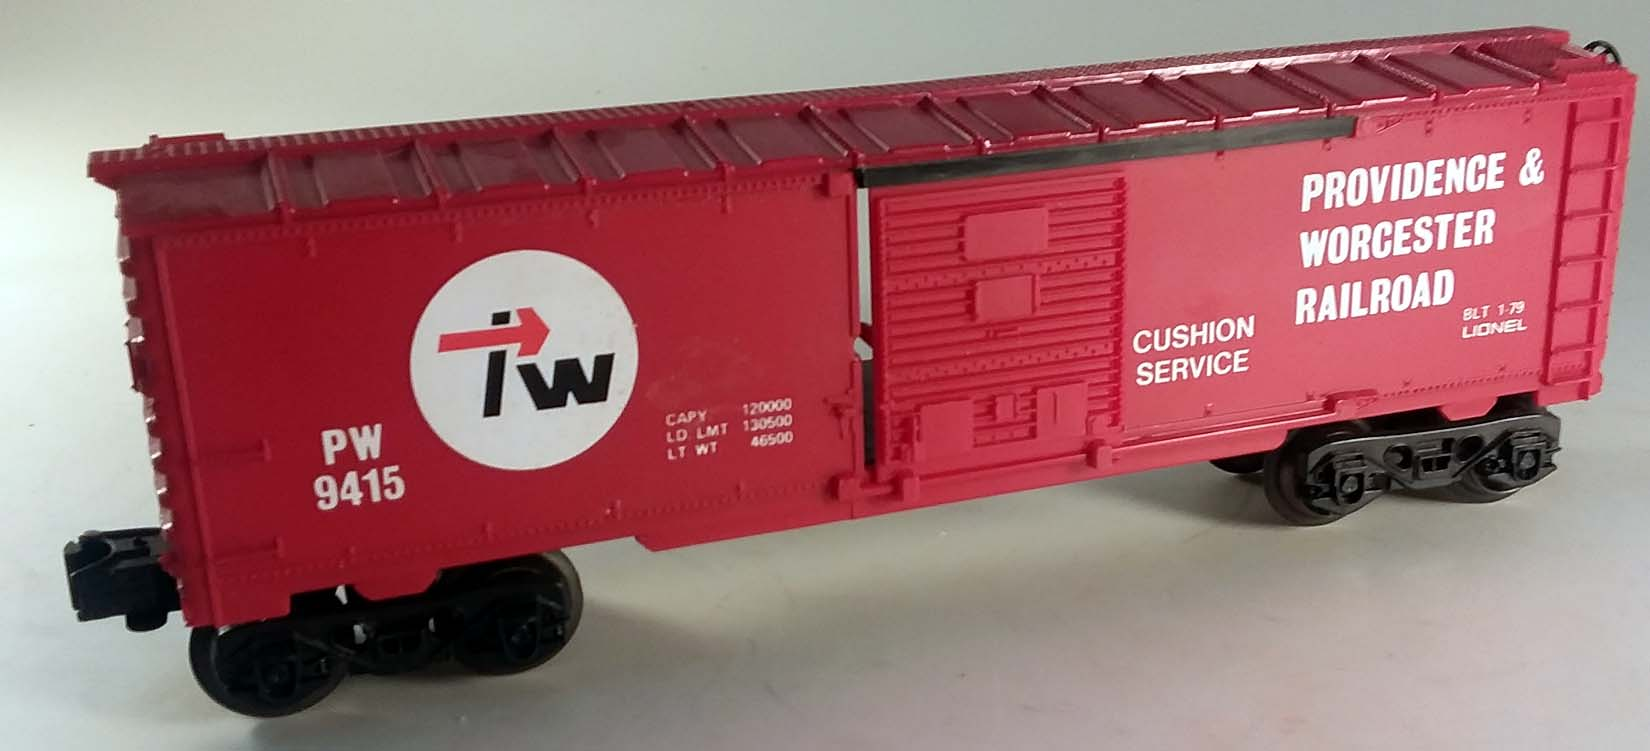 Lionel 6-9415 Providence & Worcester Box Car in box